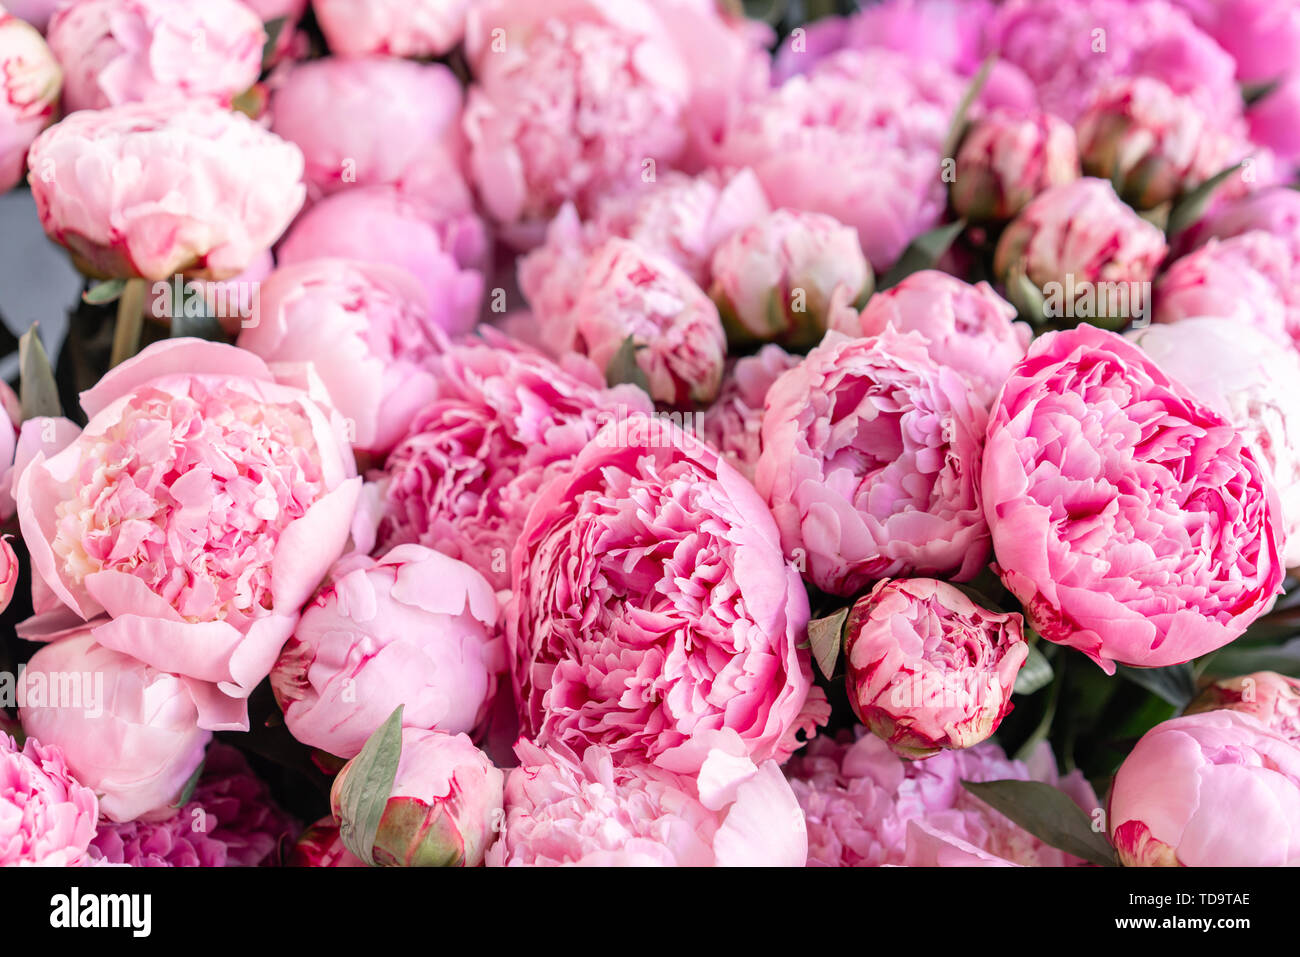 Floral Carpet Or Wallpaper Background Of Pink Peonies Morning